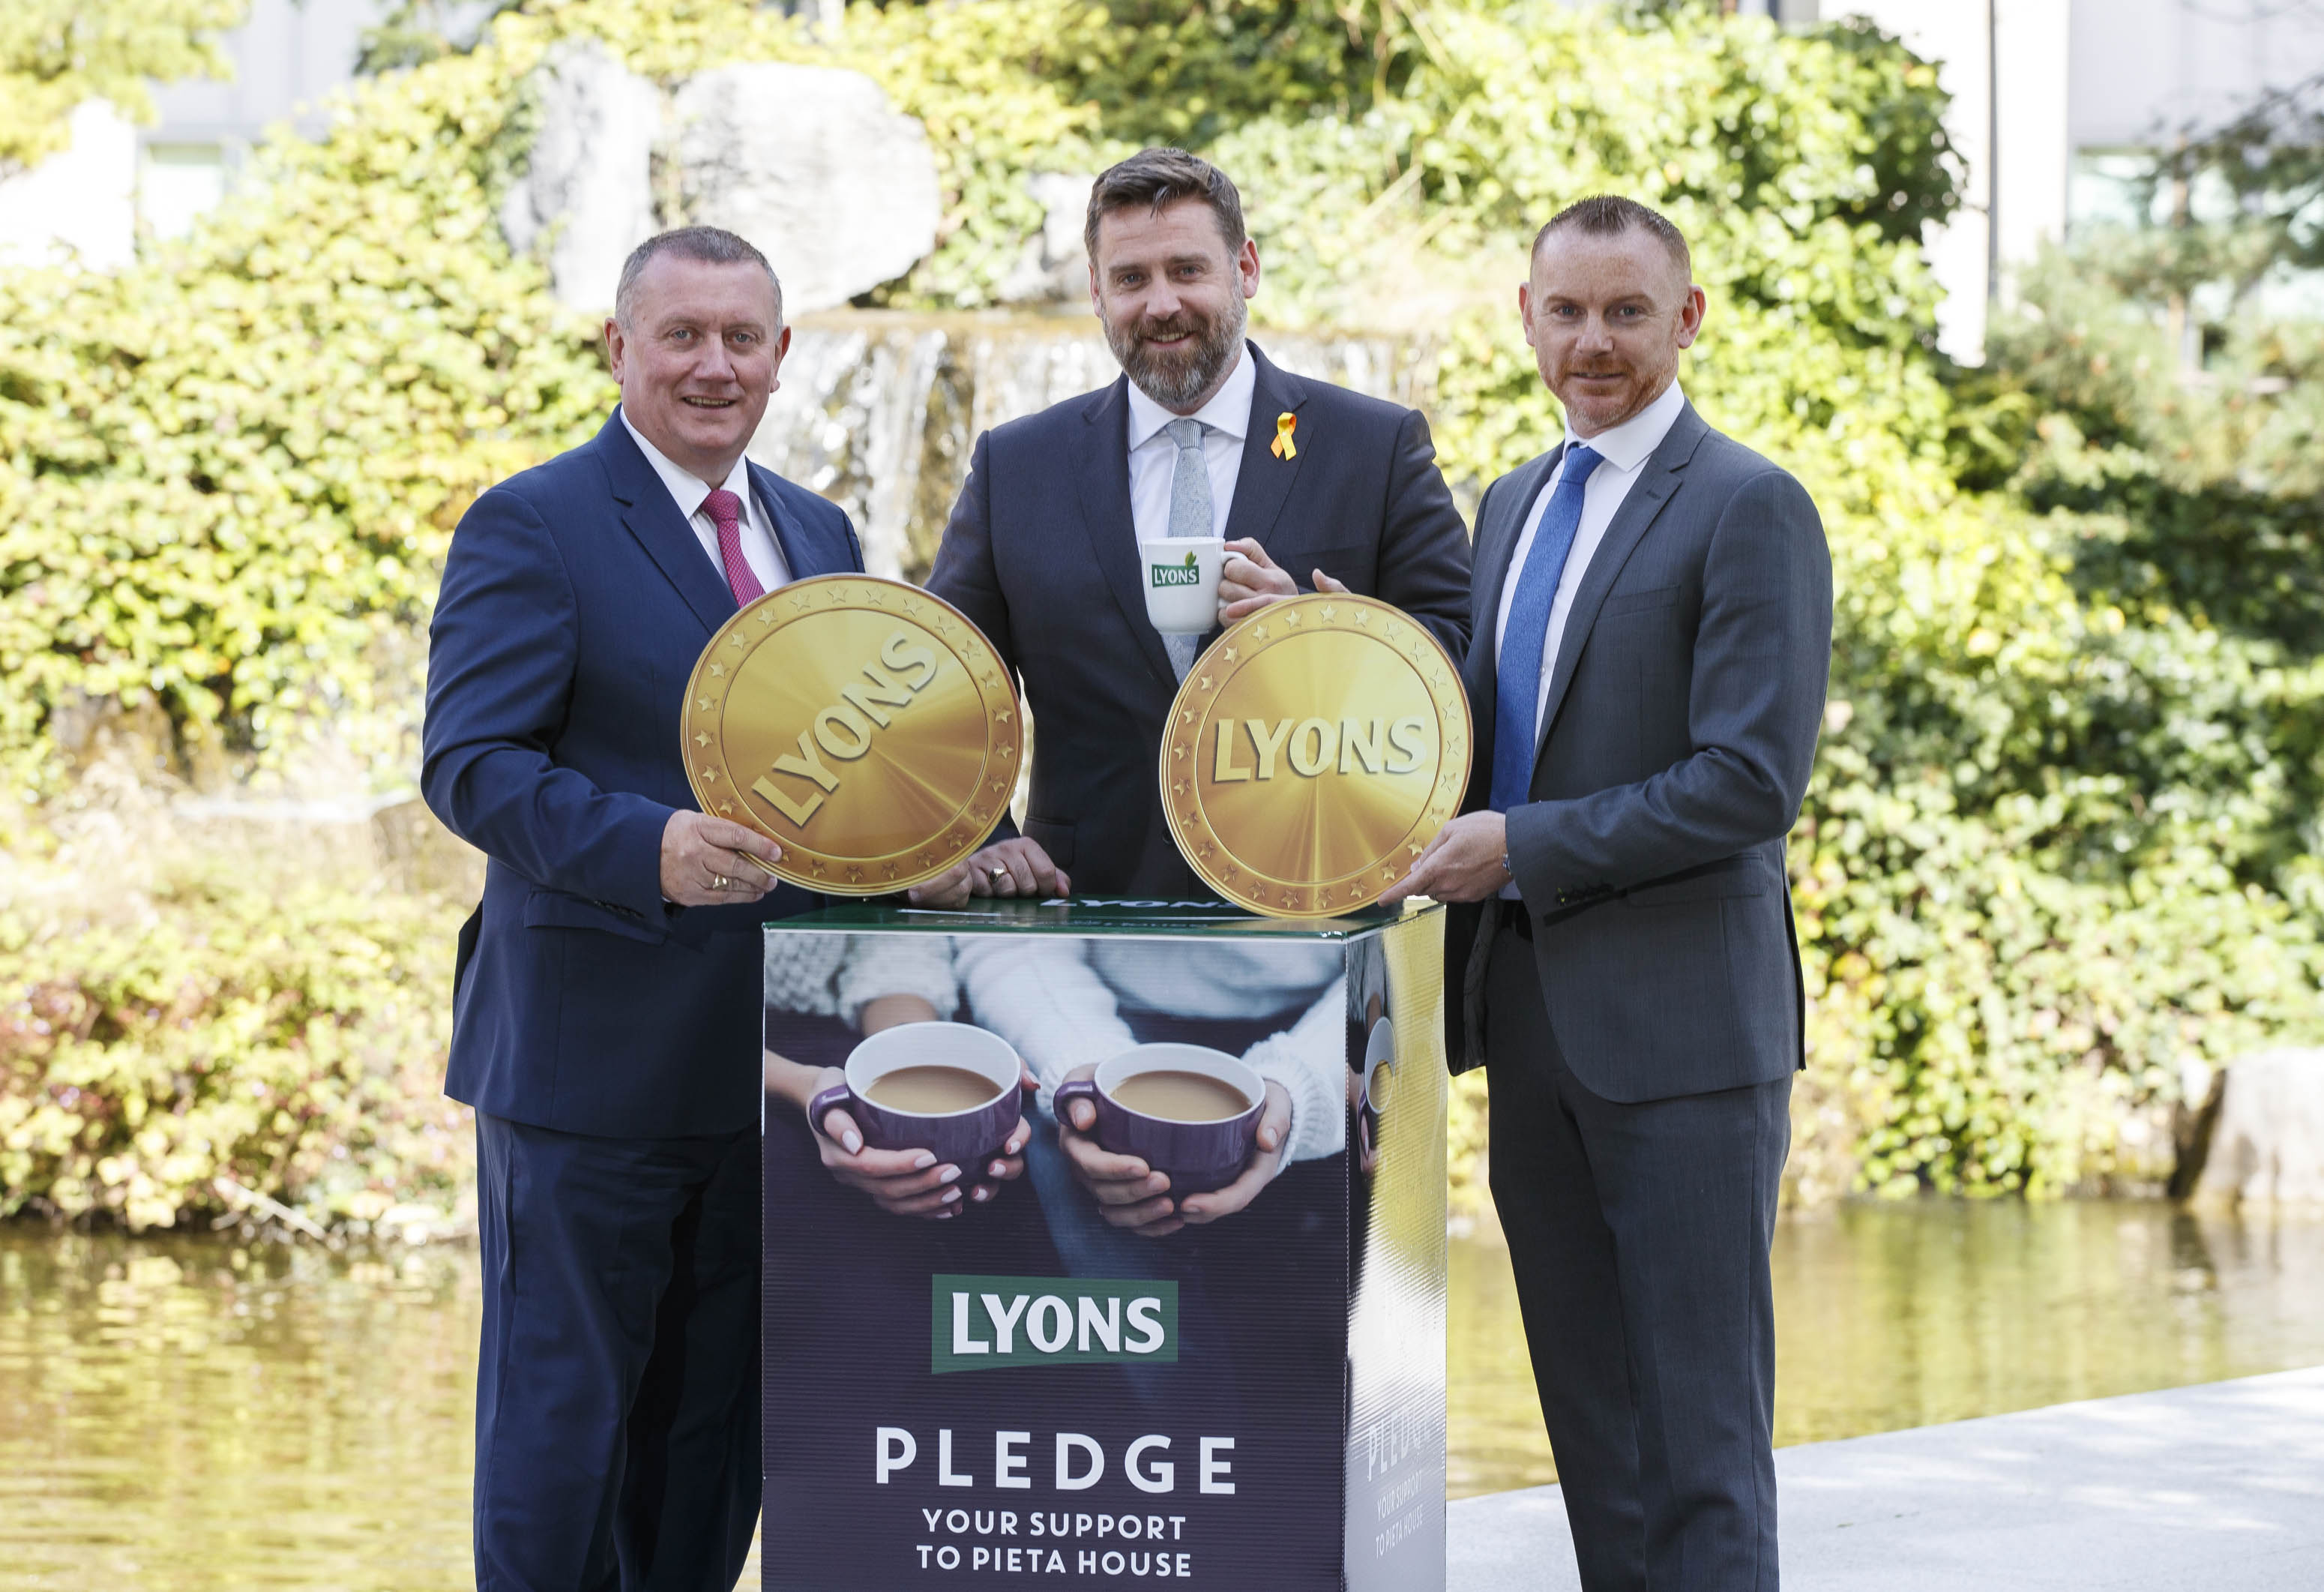 Jim Reeves, Customer Director, Unilever , Brian Higgins, CEO of Pieta House and Paul Kelly, Head of Marketing, Unilever